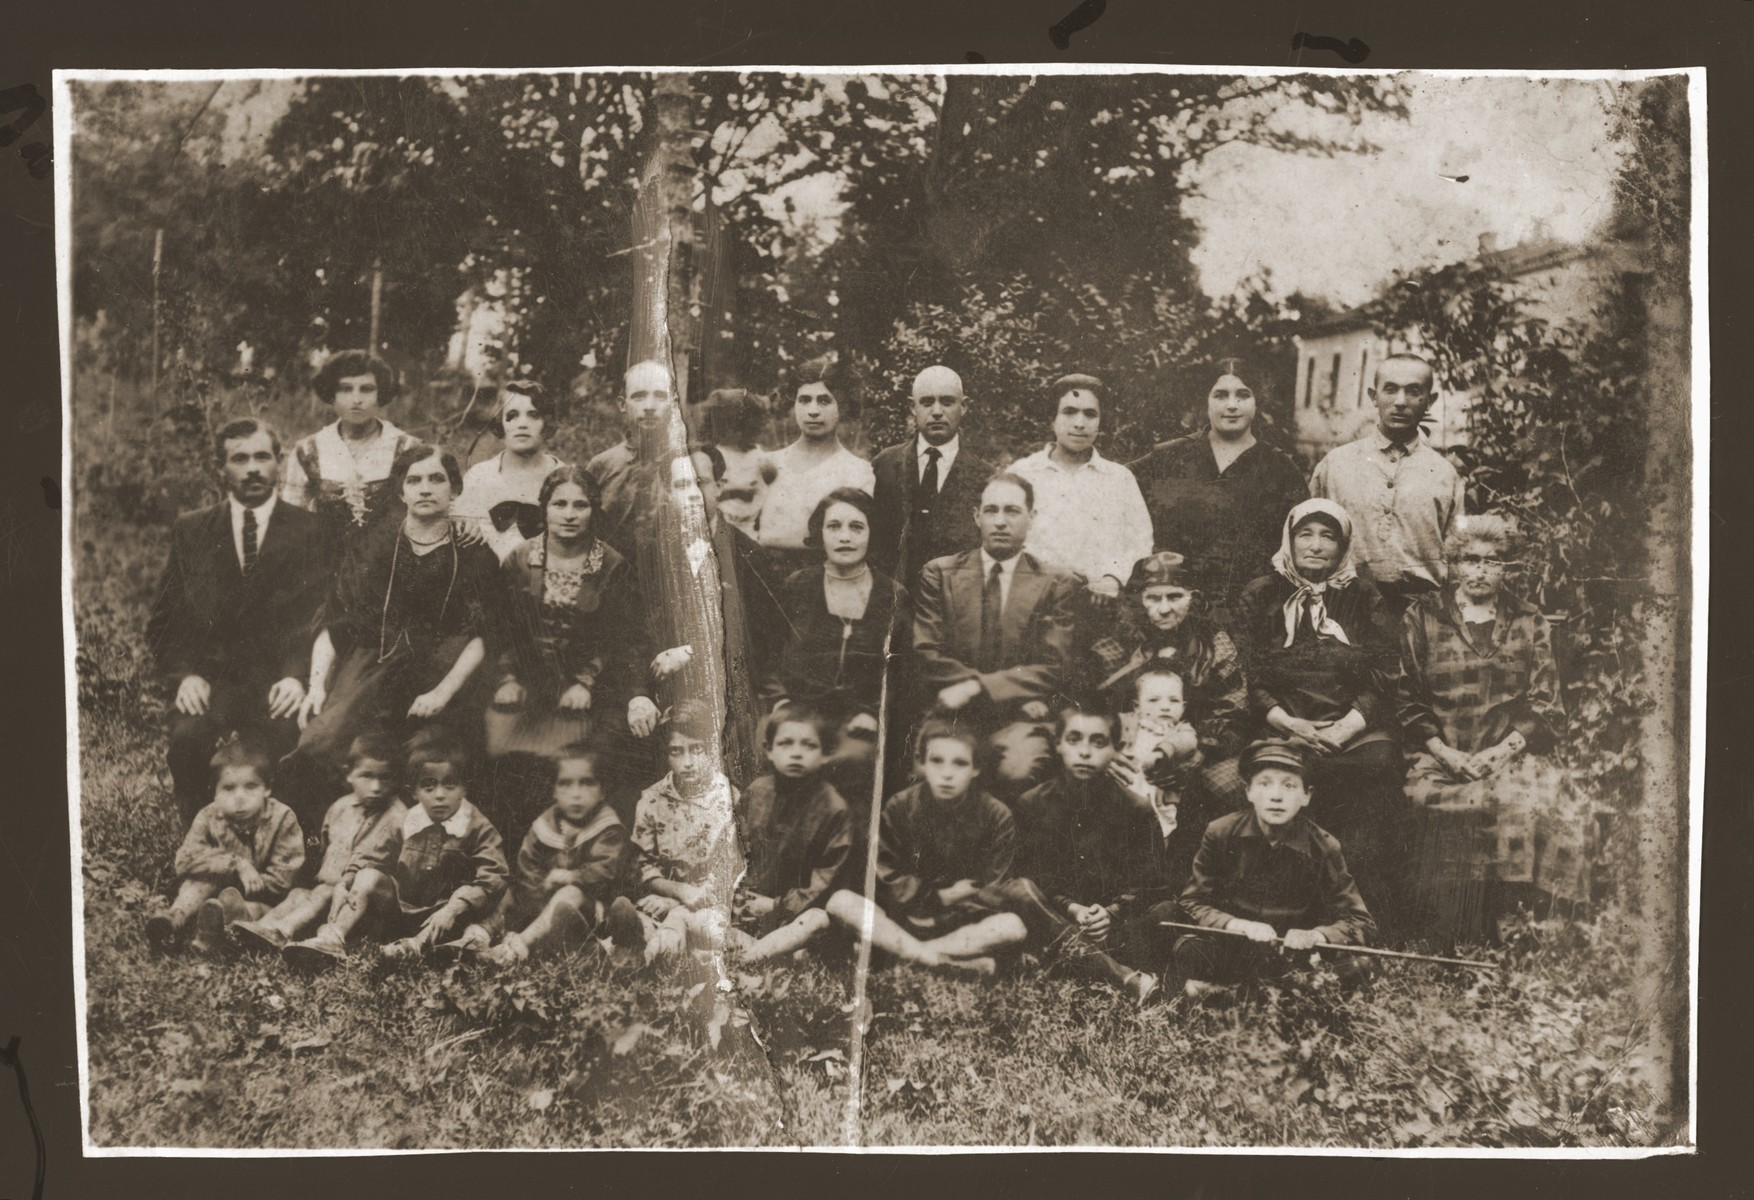 Portrait of the Lewin family in Derazhnya.   Among those pictured are Abram Lewin (front row, third from the right).  Most of the family was killed by the Nazis in Derazhnya in 1942.